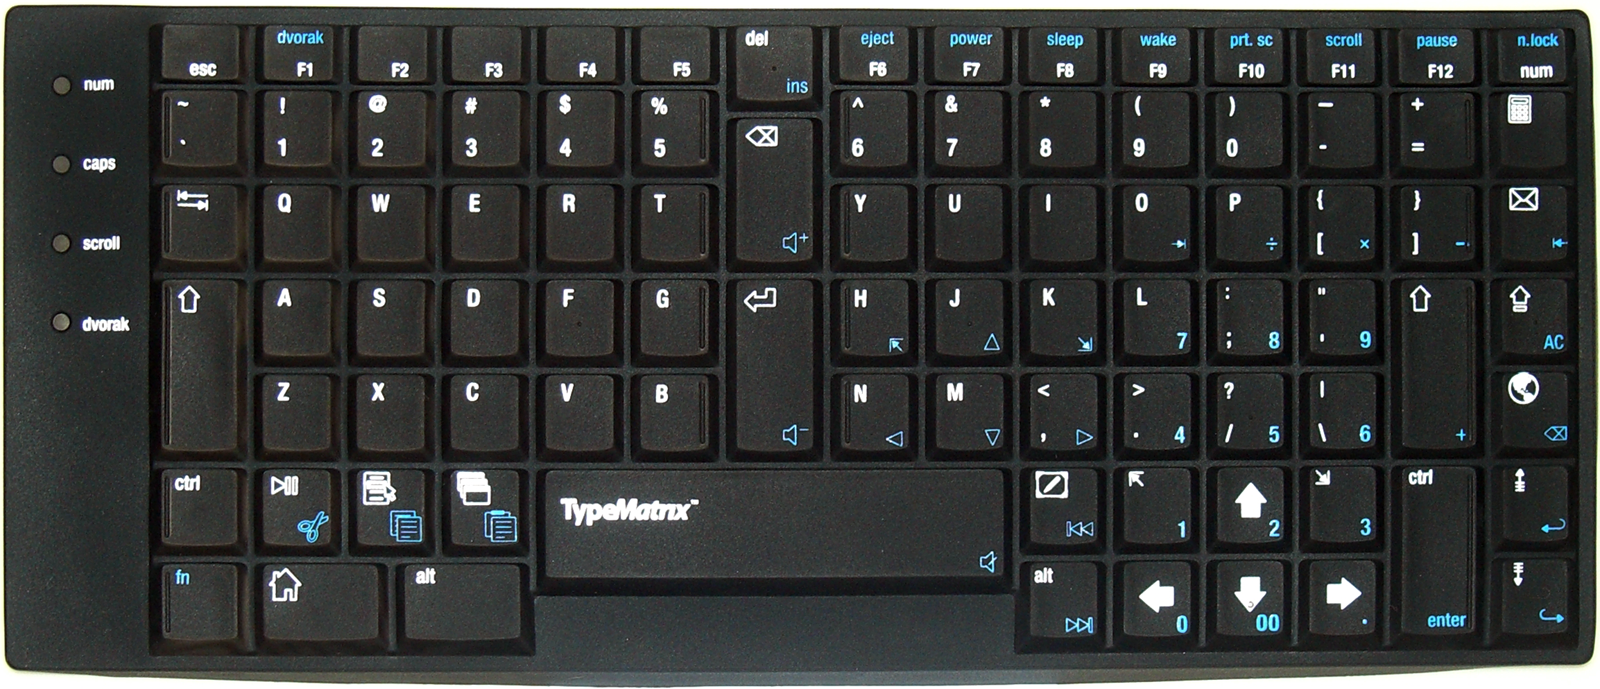 Qwerty qwerty images - ...